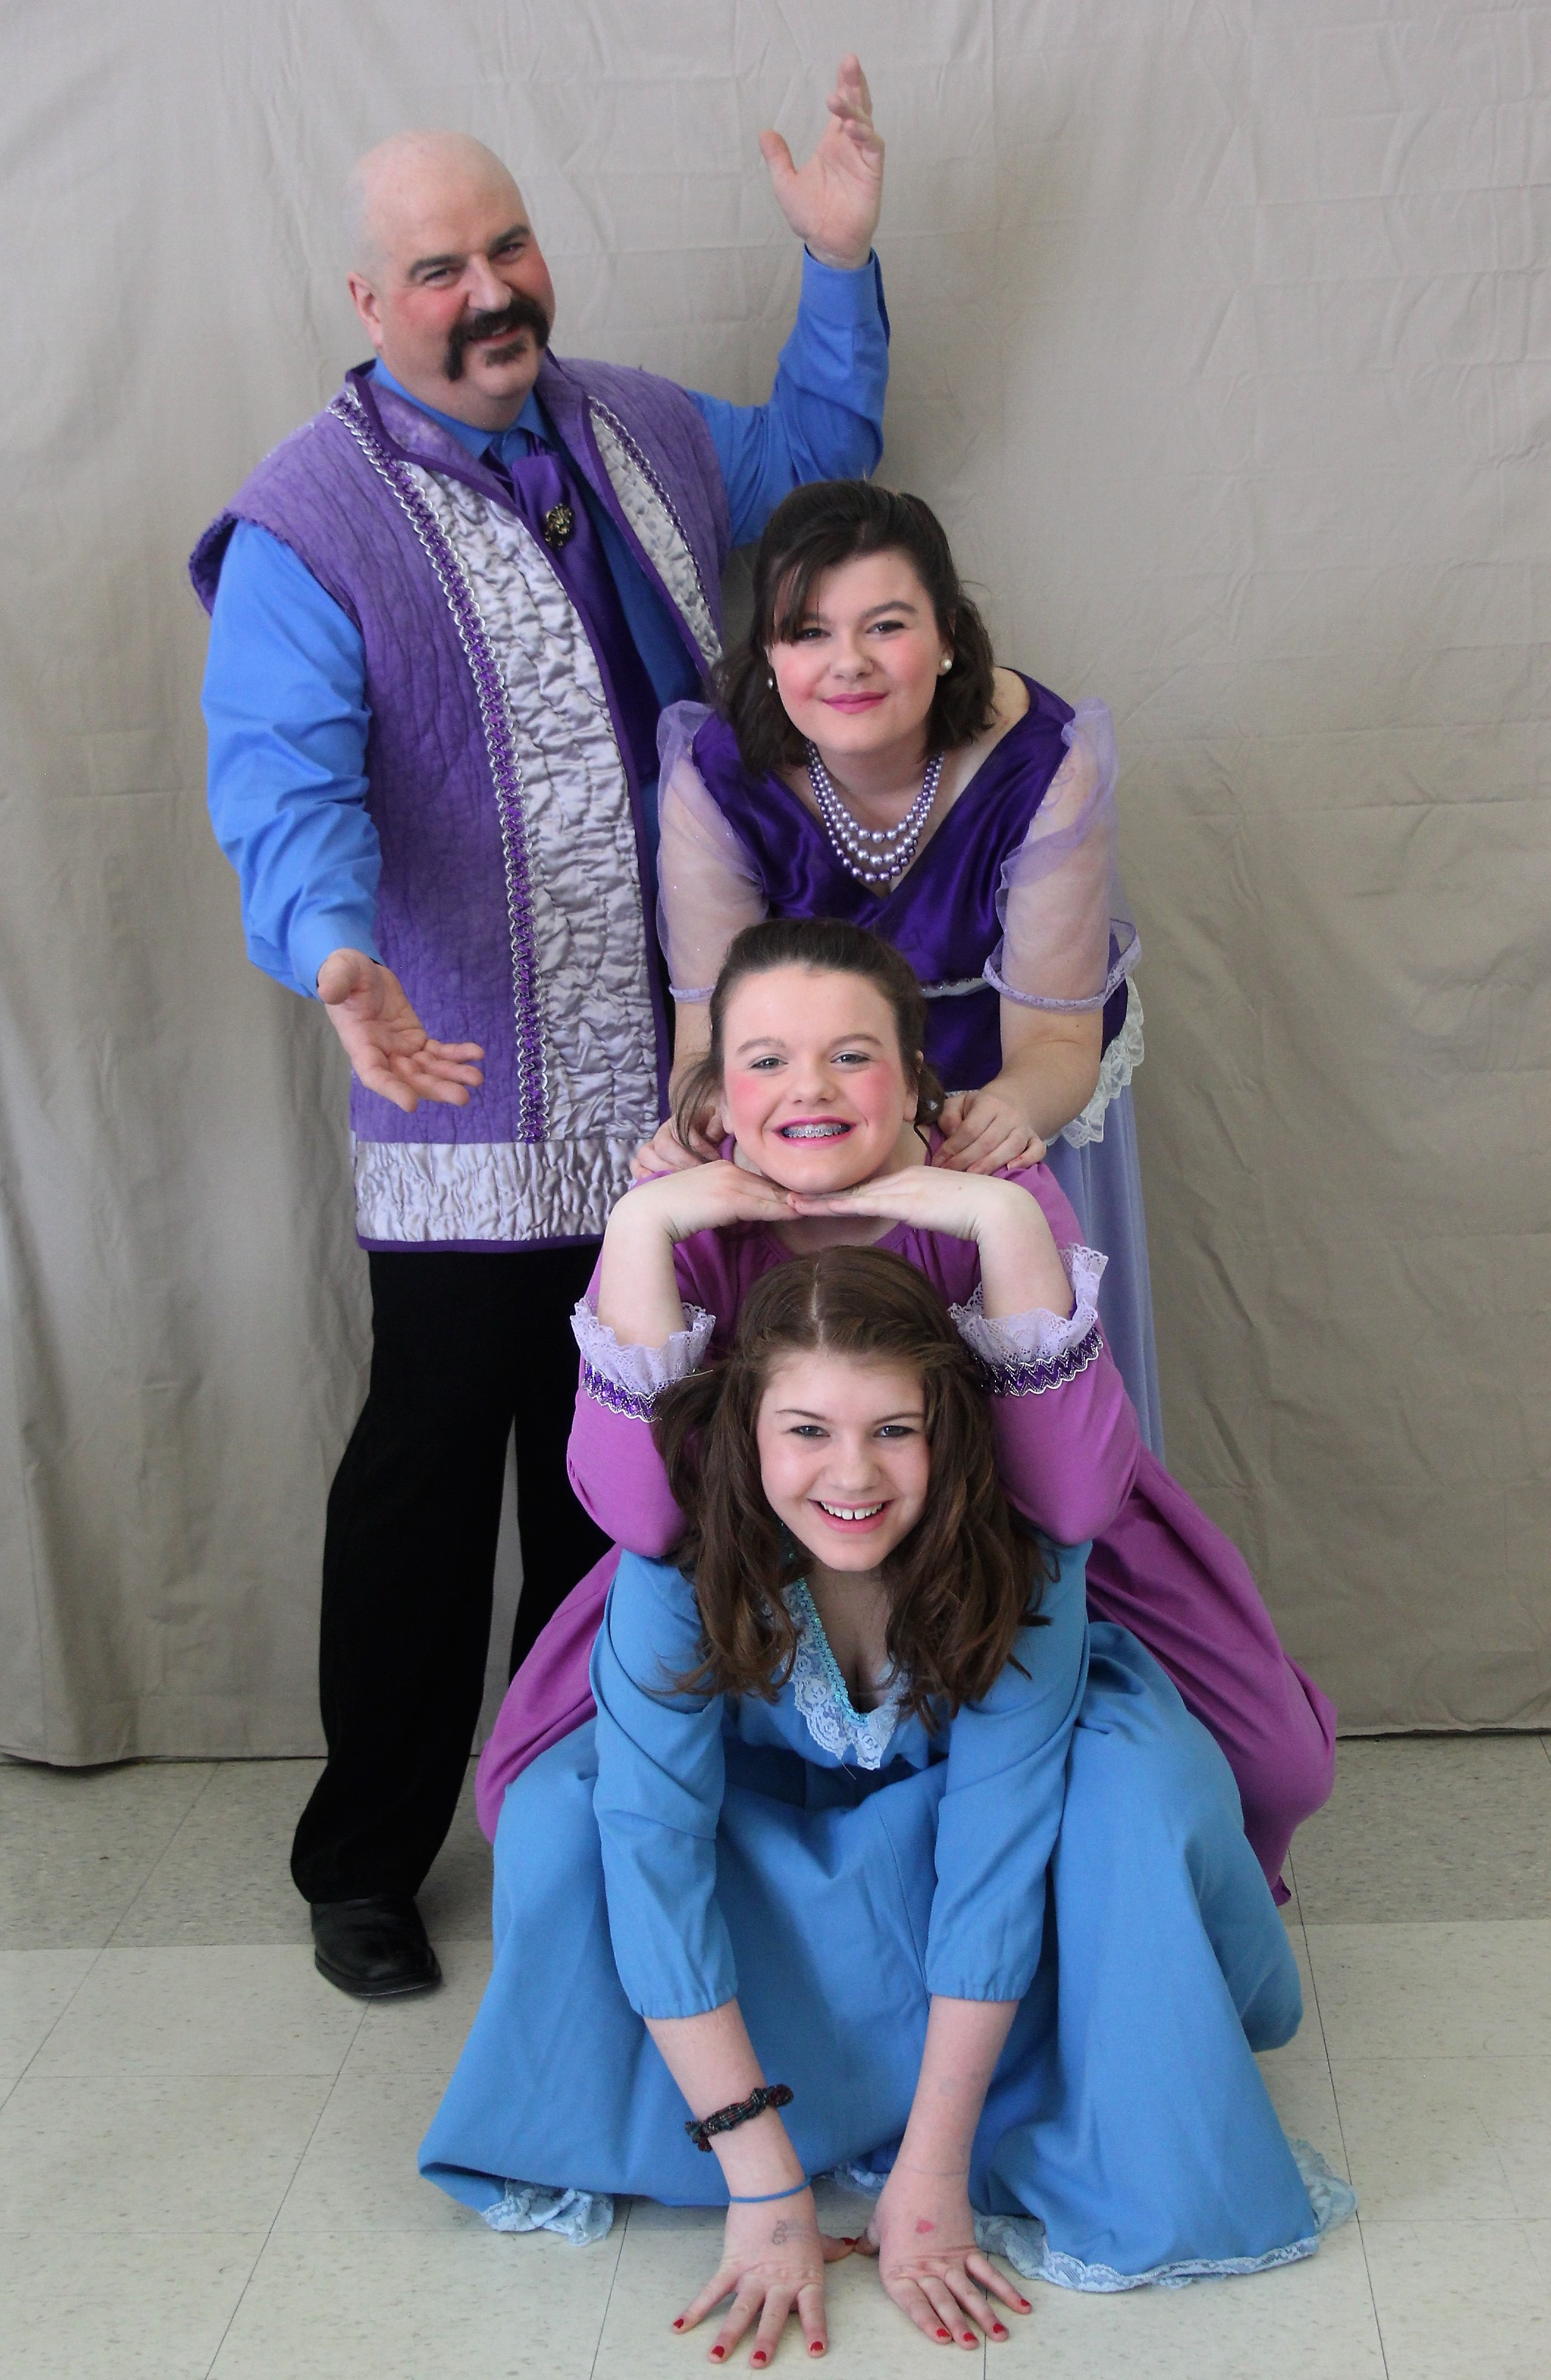 A tower of the Casey family in royal purple